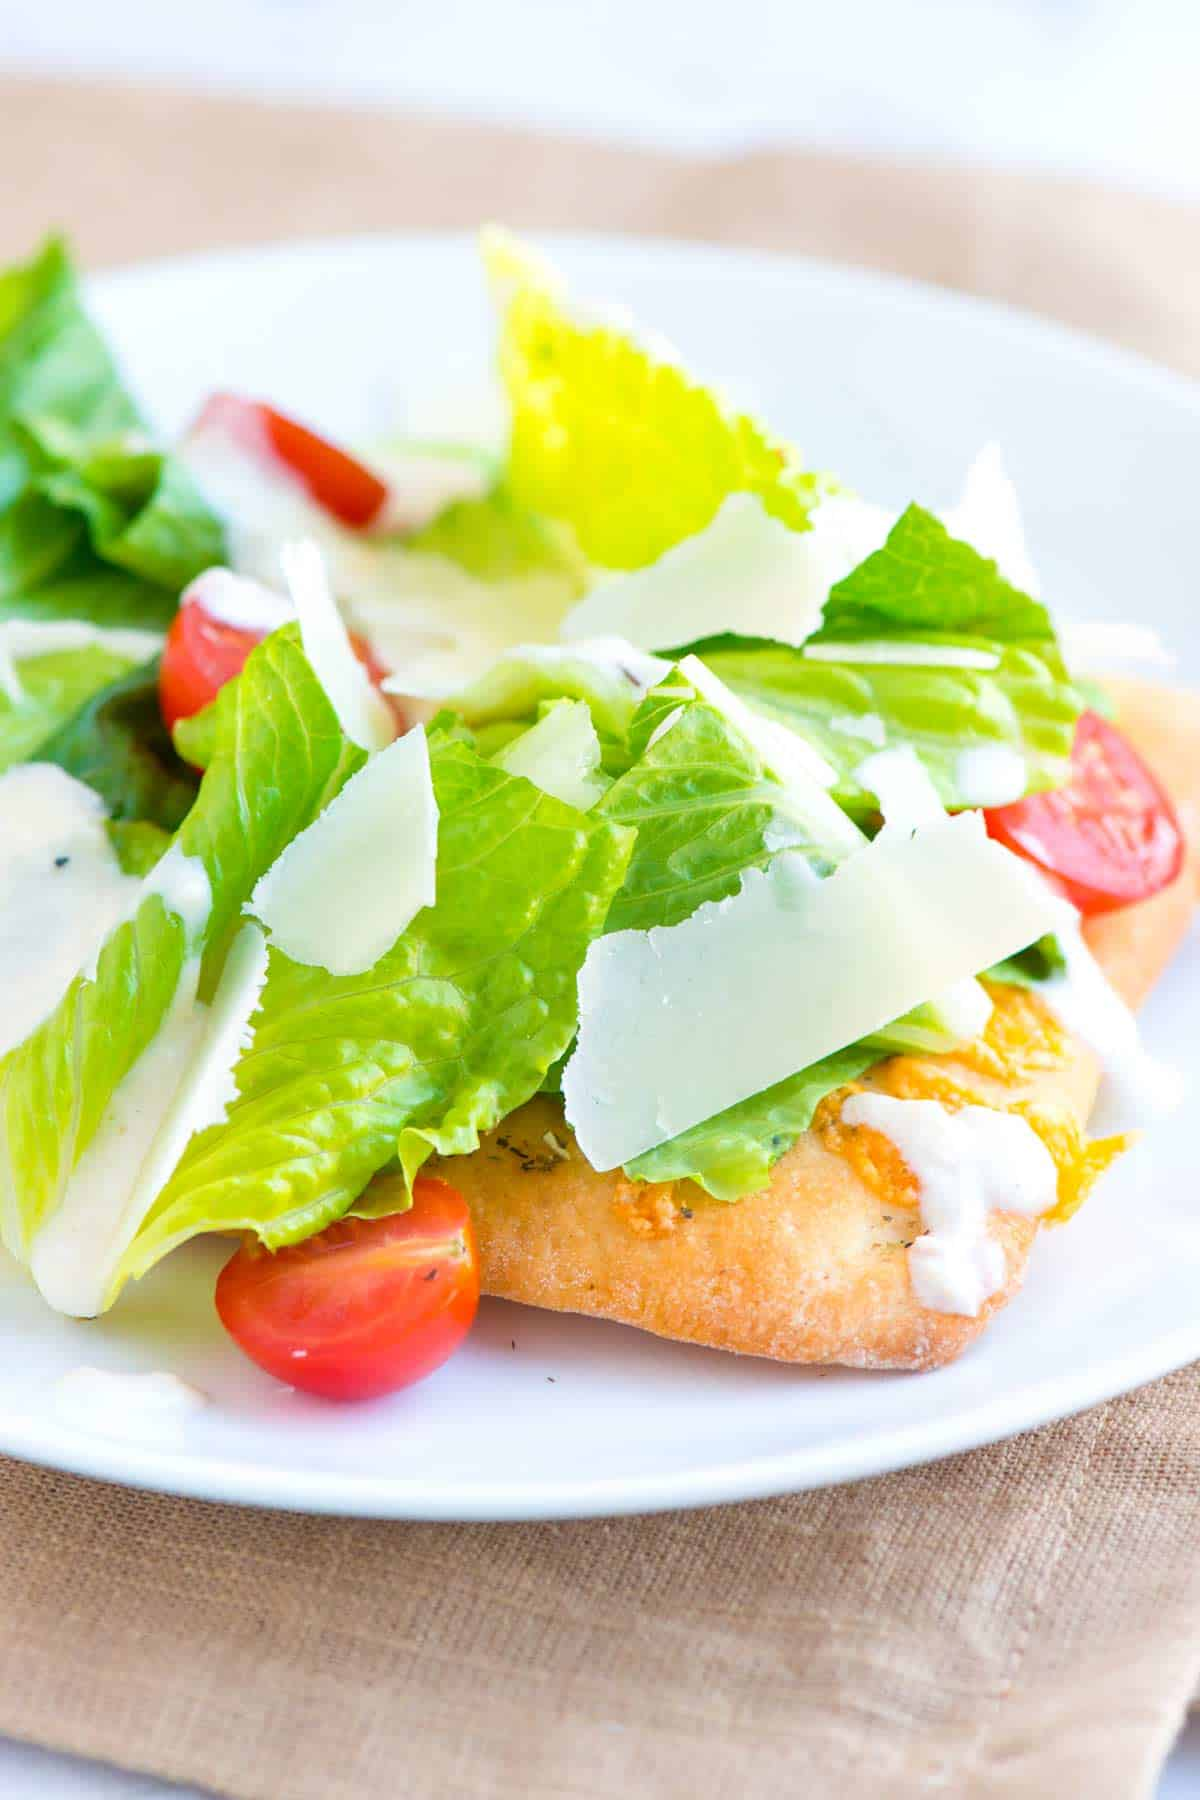 How to Make Pizza Topped with Caesar Salad